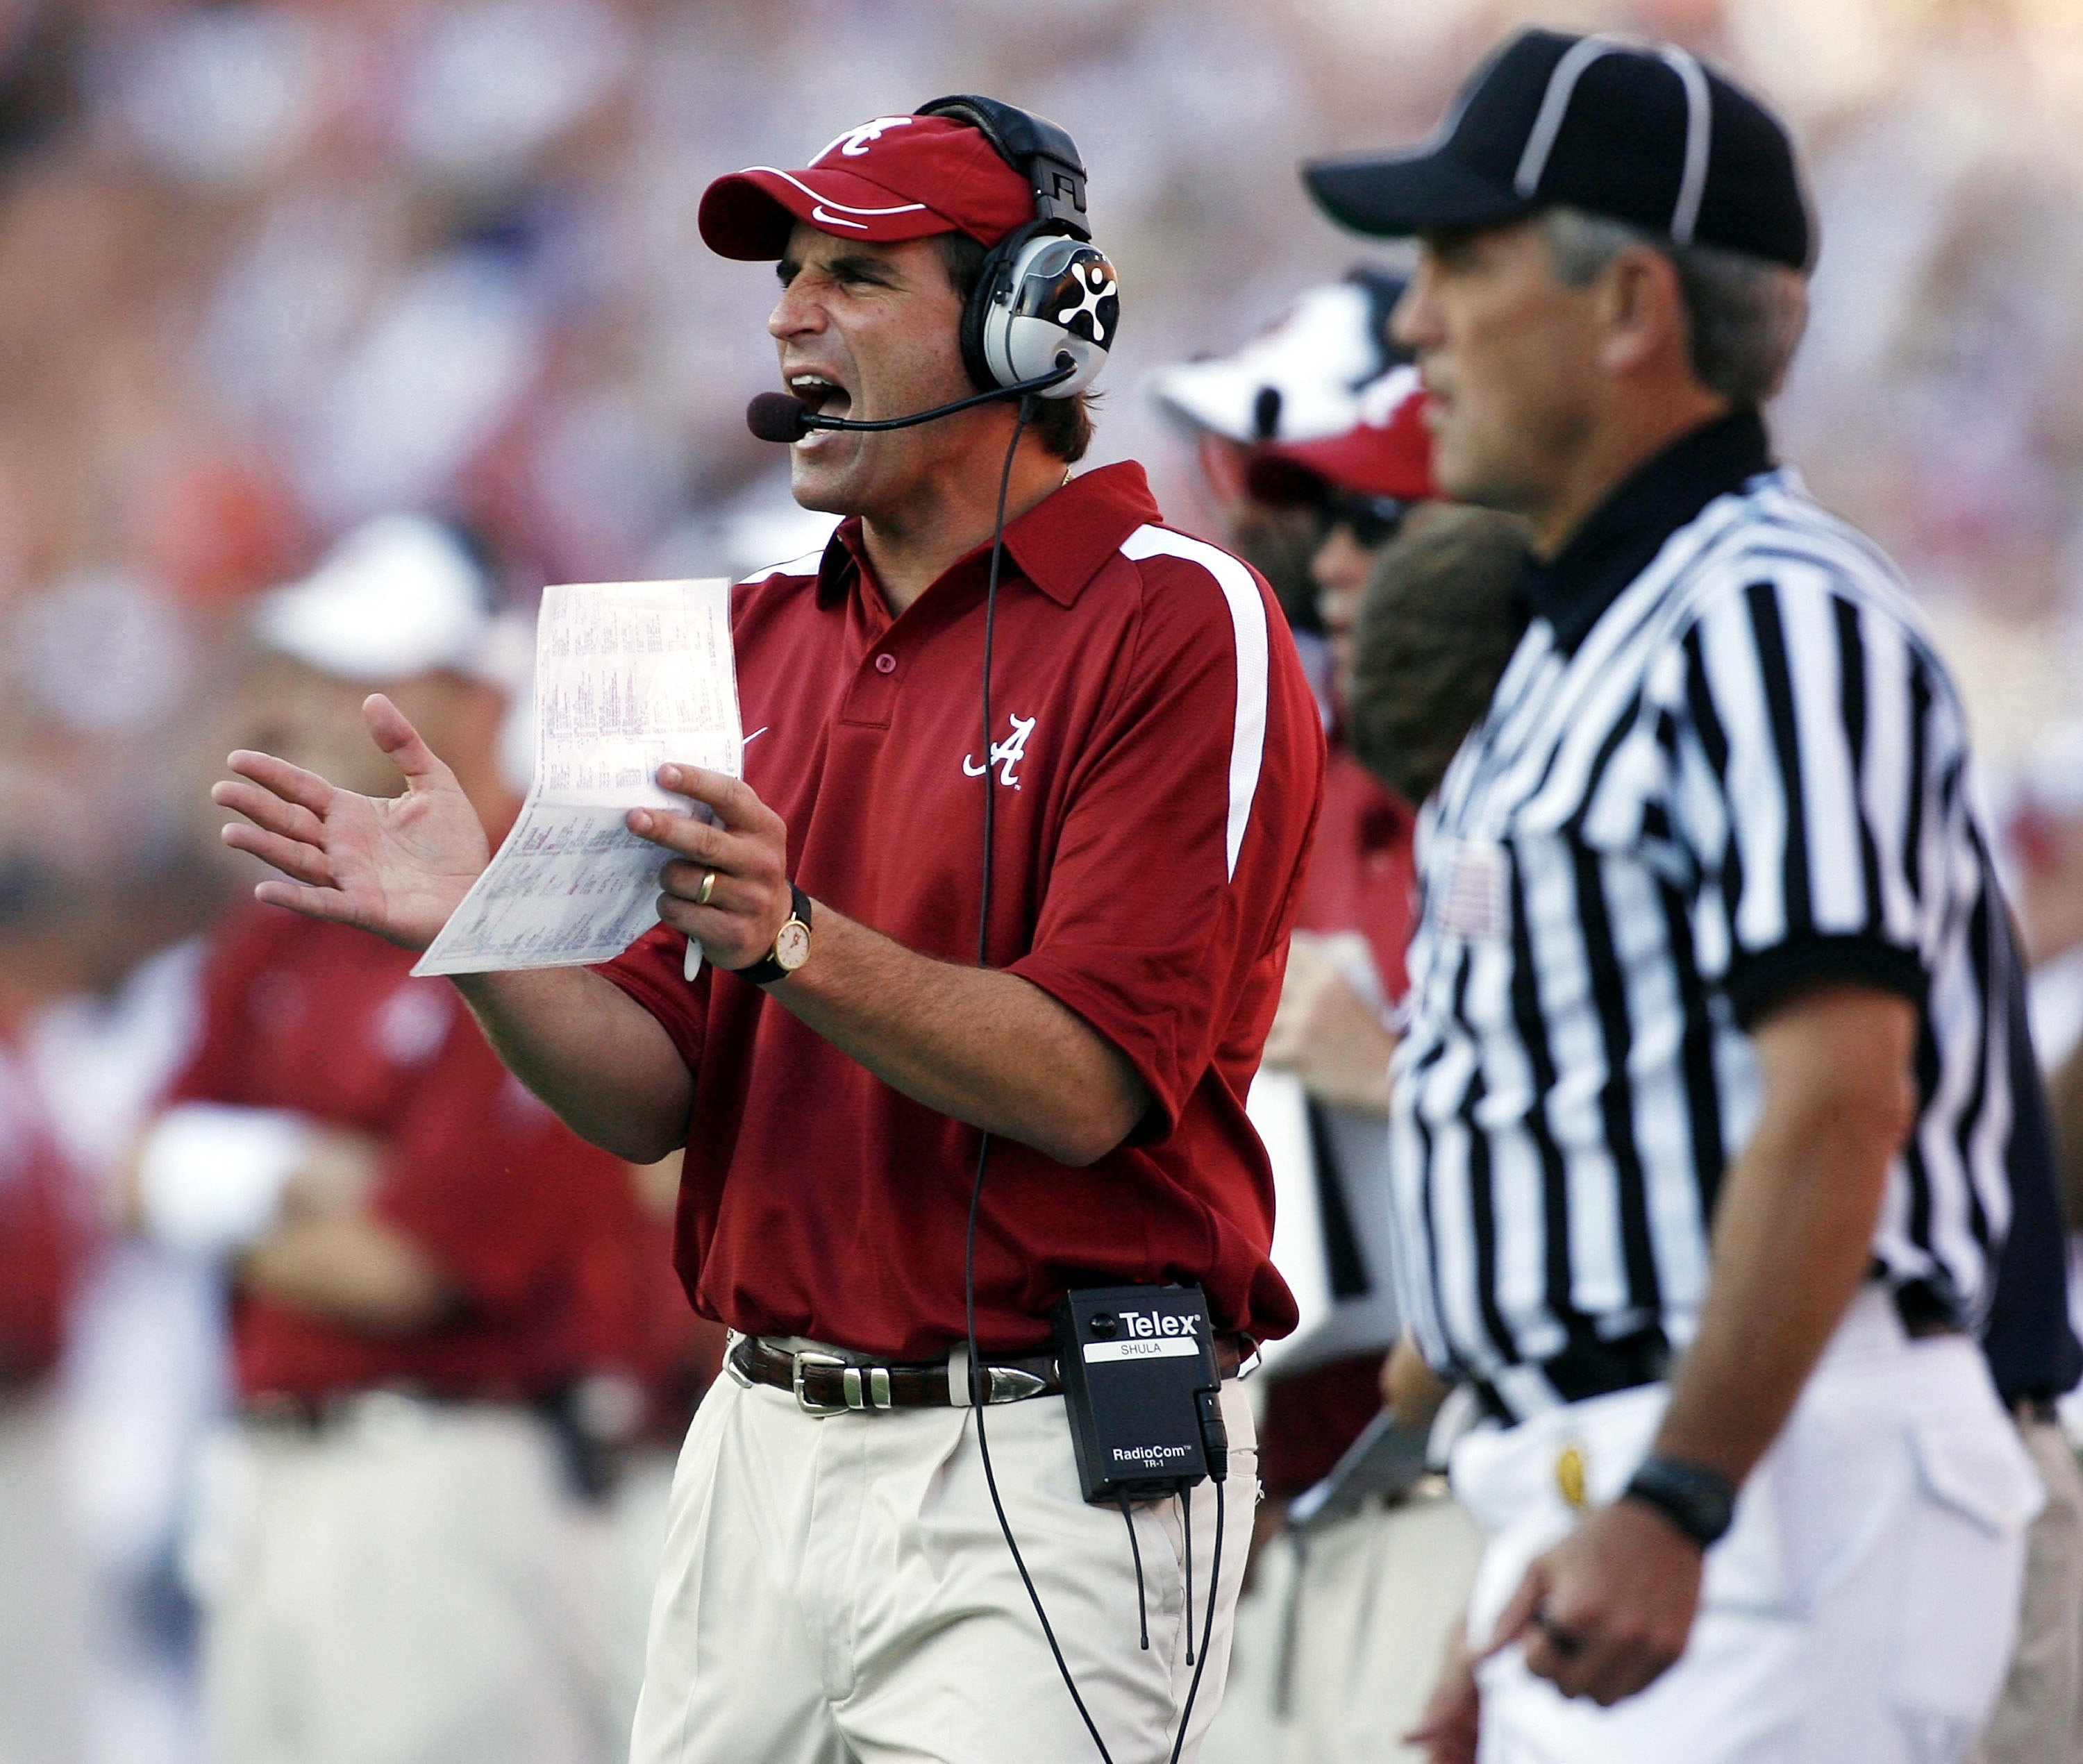 GAINESVILLE, FL - SEPTEMBER 30:  Alabama Crimson head coach Mike Shula shouts instruction against the Florida Gators September 30, 2006 at Ben Hill Griffin Stadium at Florida Field  in Gainsville, Florida.  (Photo by Marc Serota/Getty Images)